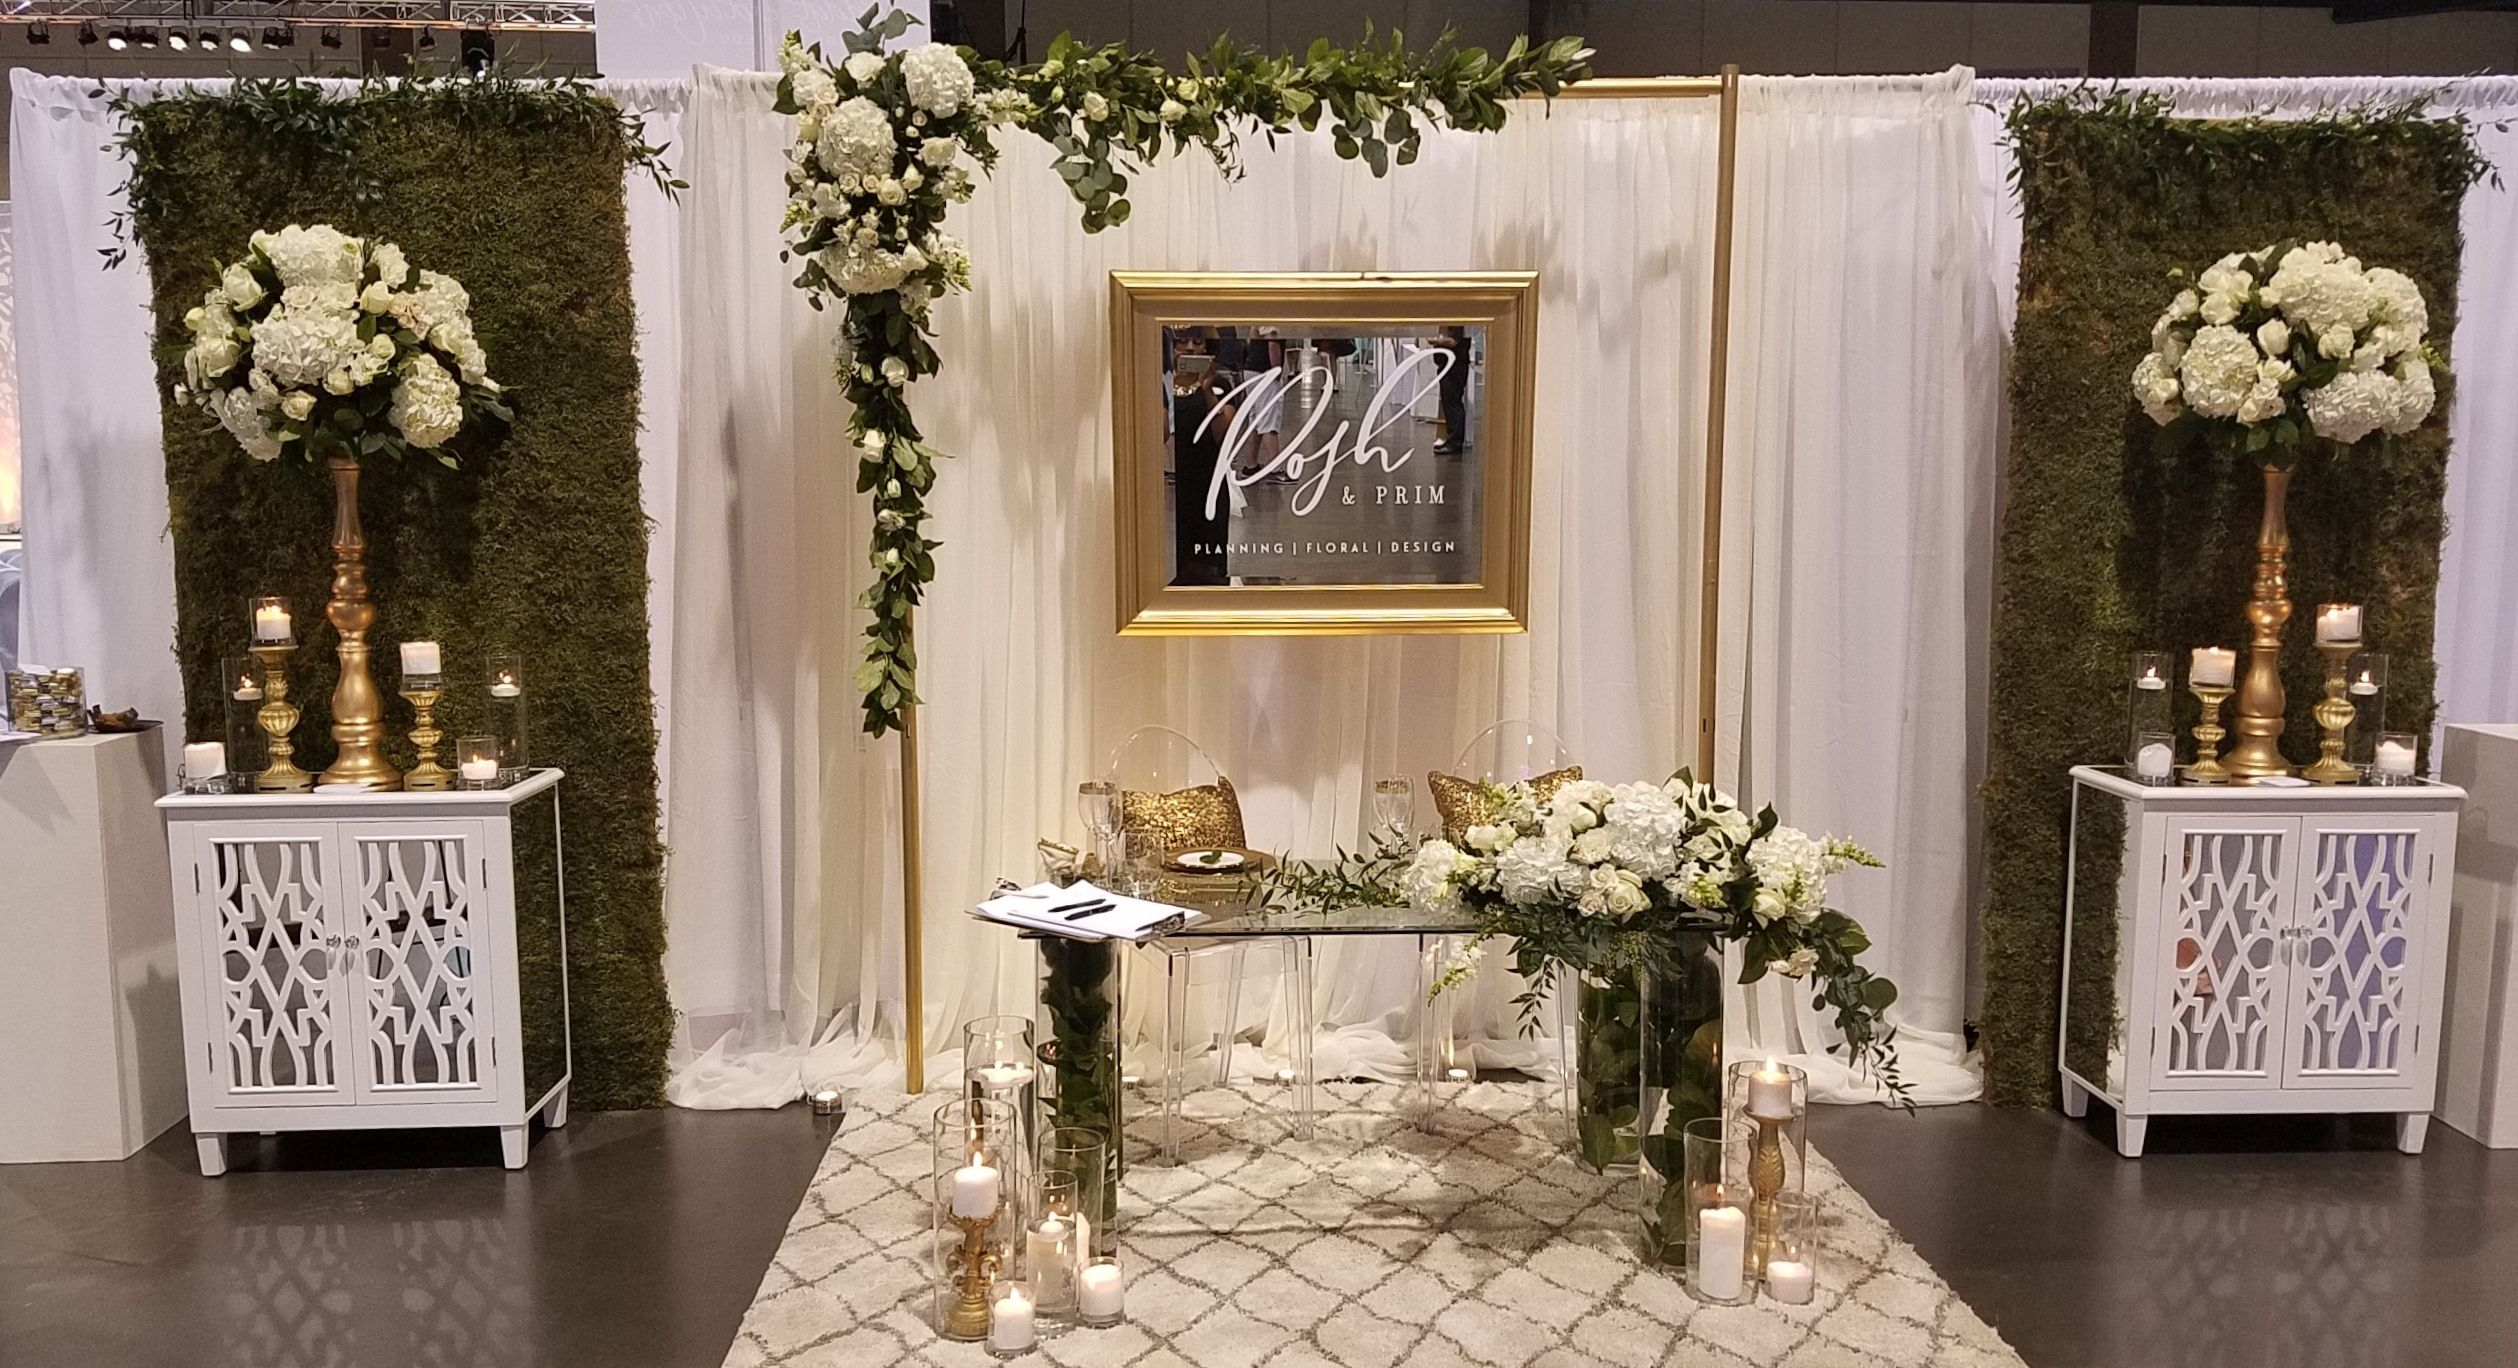 16 best Georgetown Bridal Show images on Pinterest ... |Bridal Fair